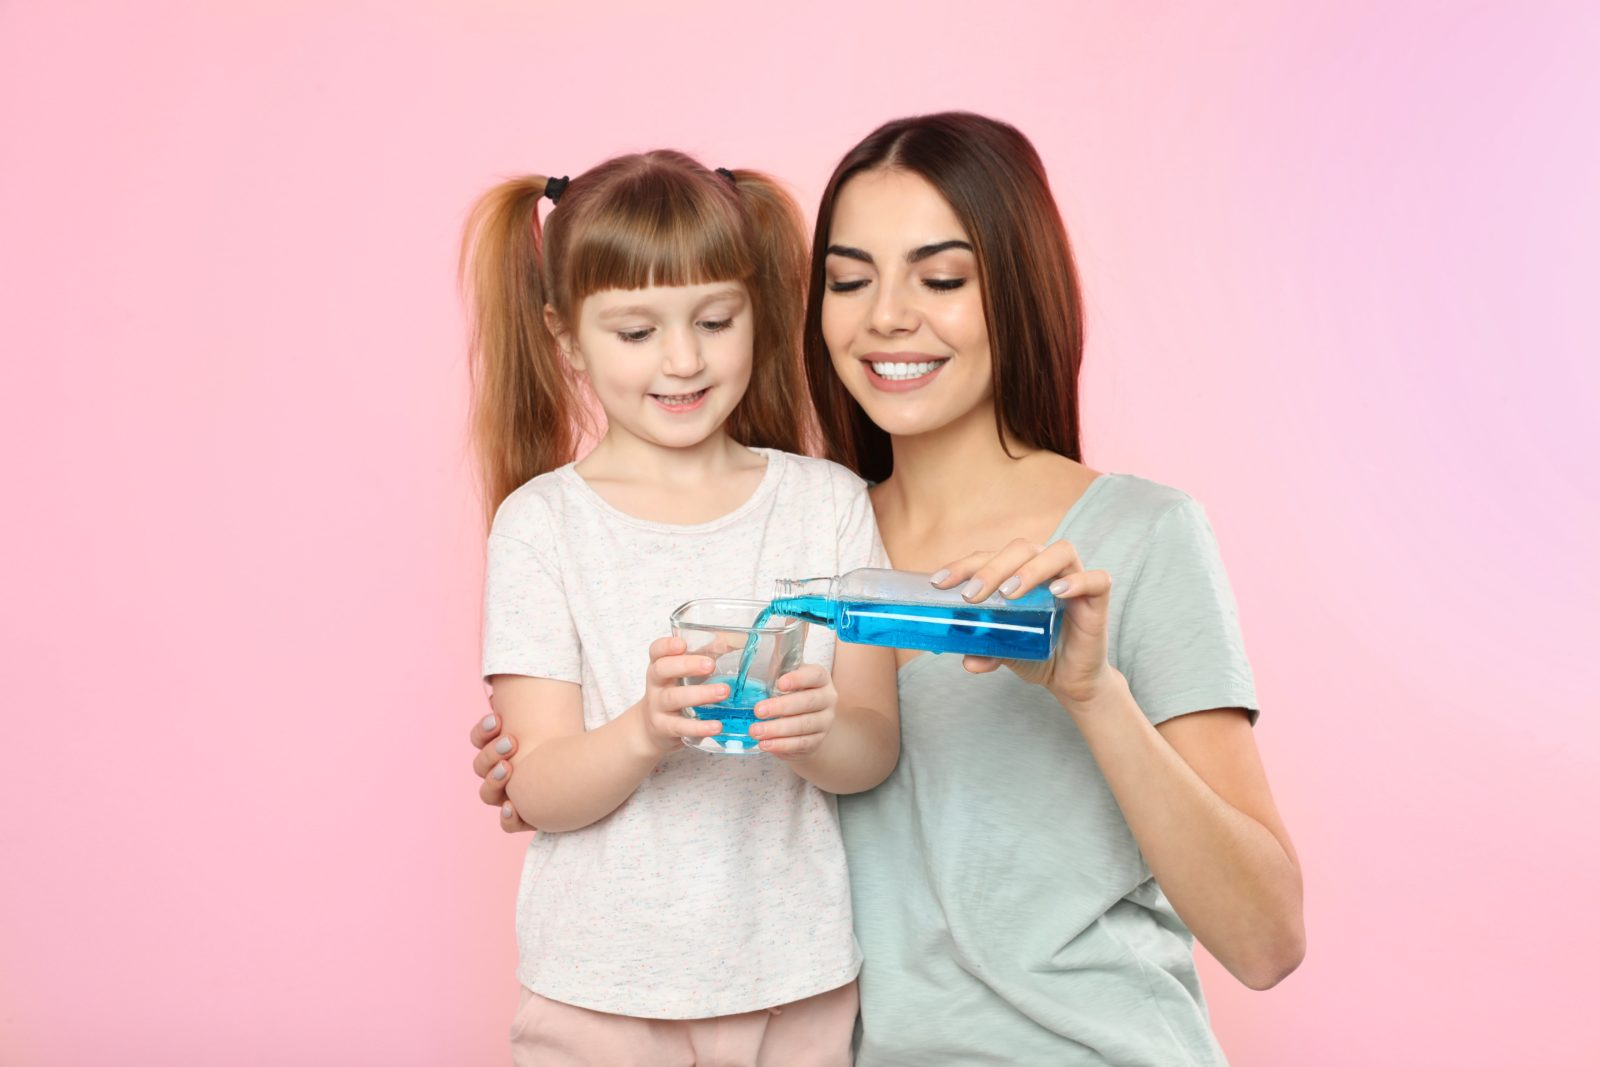 mother helping her daughter with mouthwash